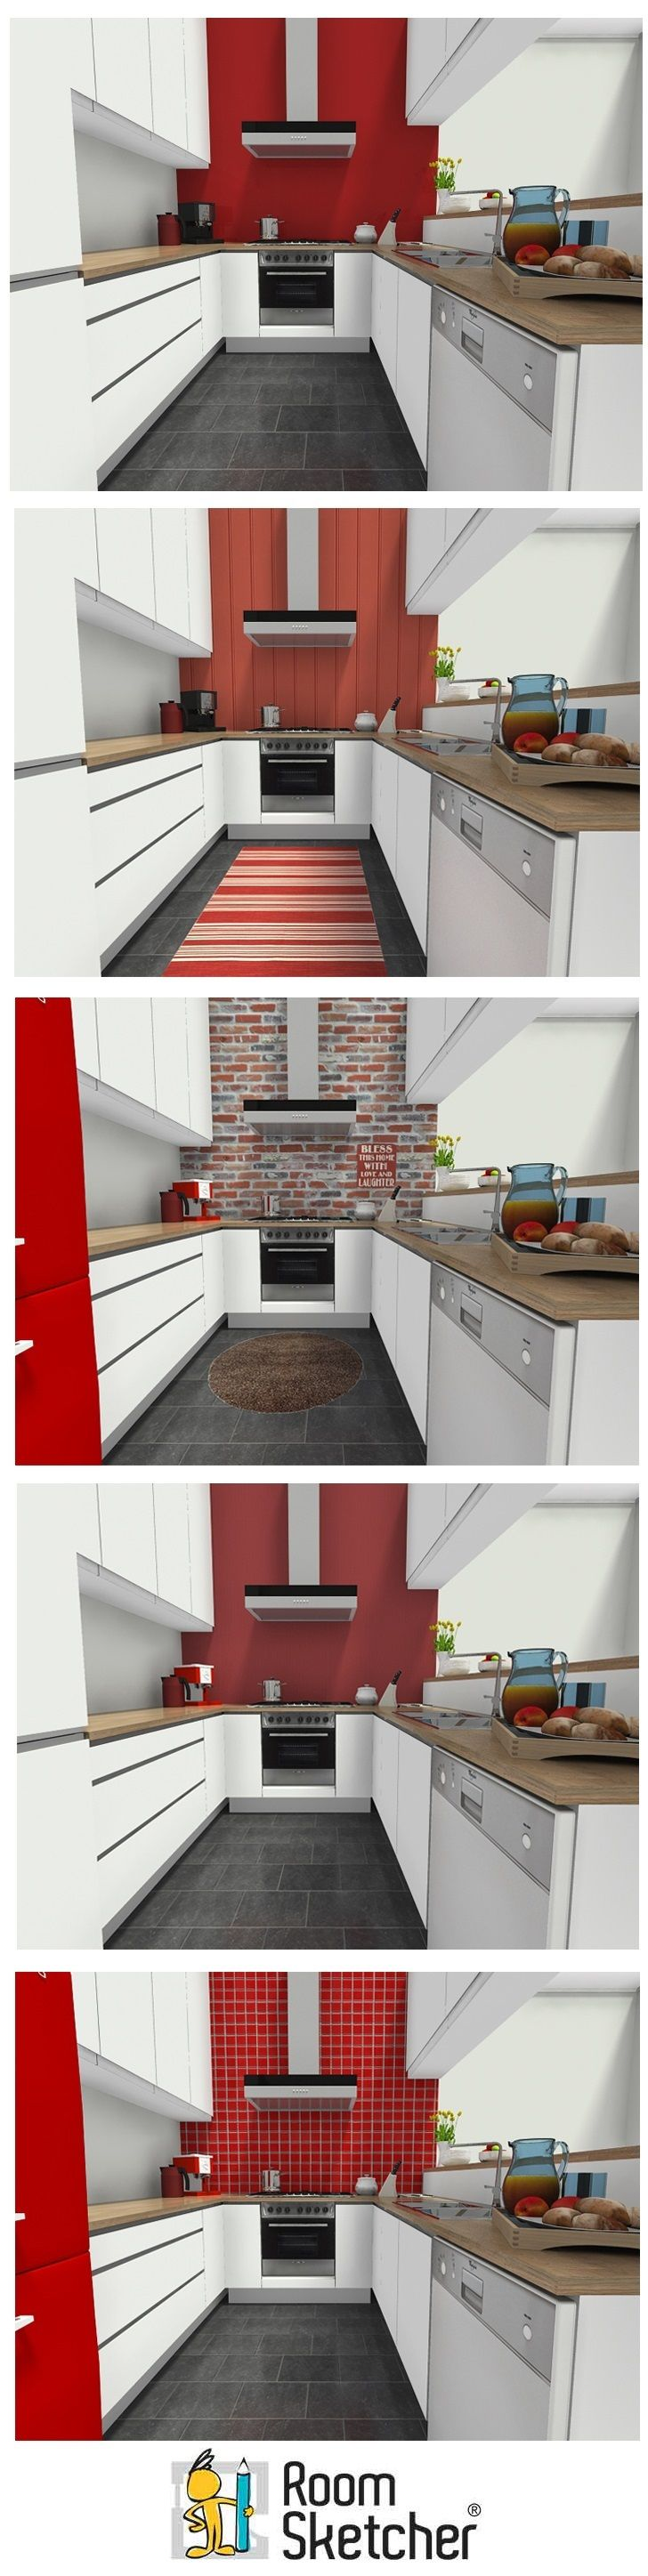 Kitchen Design Options